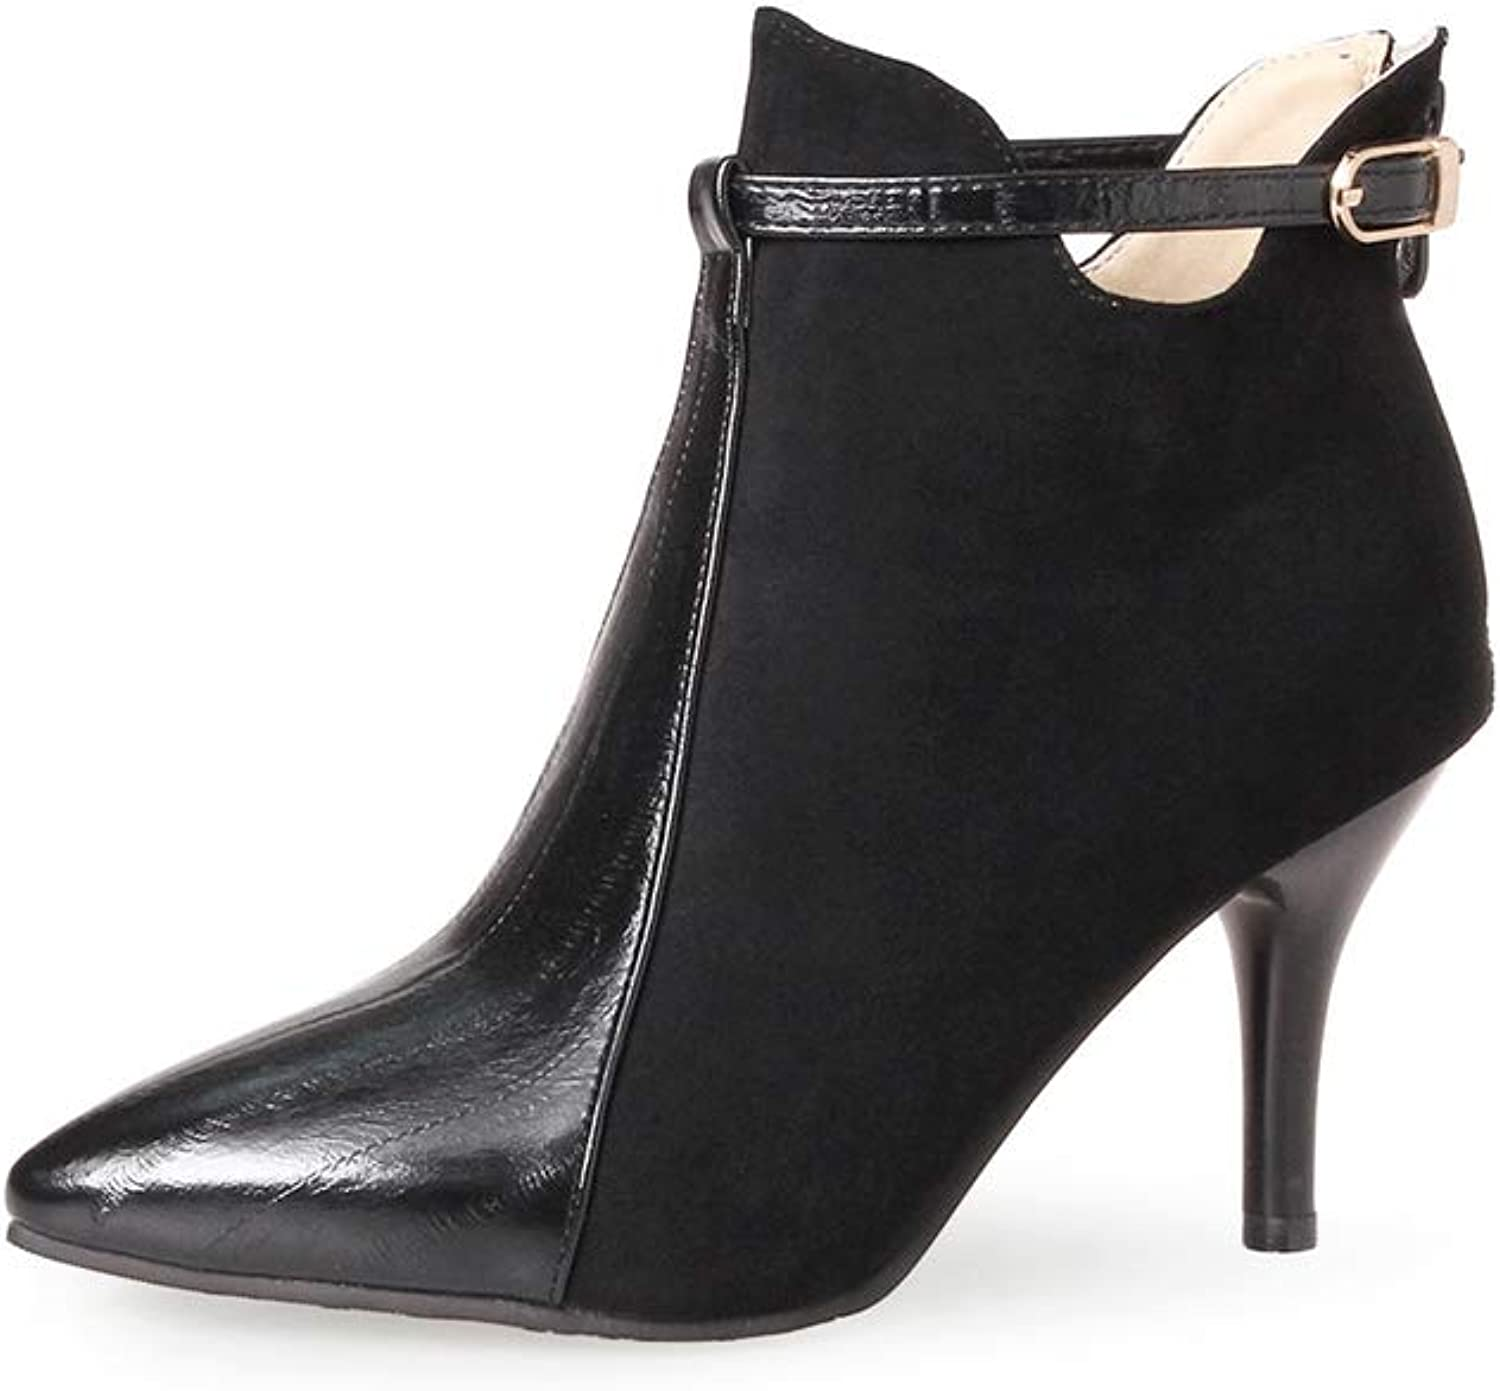 Btrada Womens Fashion High Heels Ankle Boots Sexy Pointed Toe Back Zipper Dress Pumps Wedding Booties